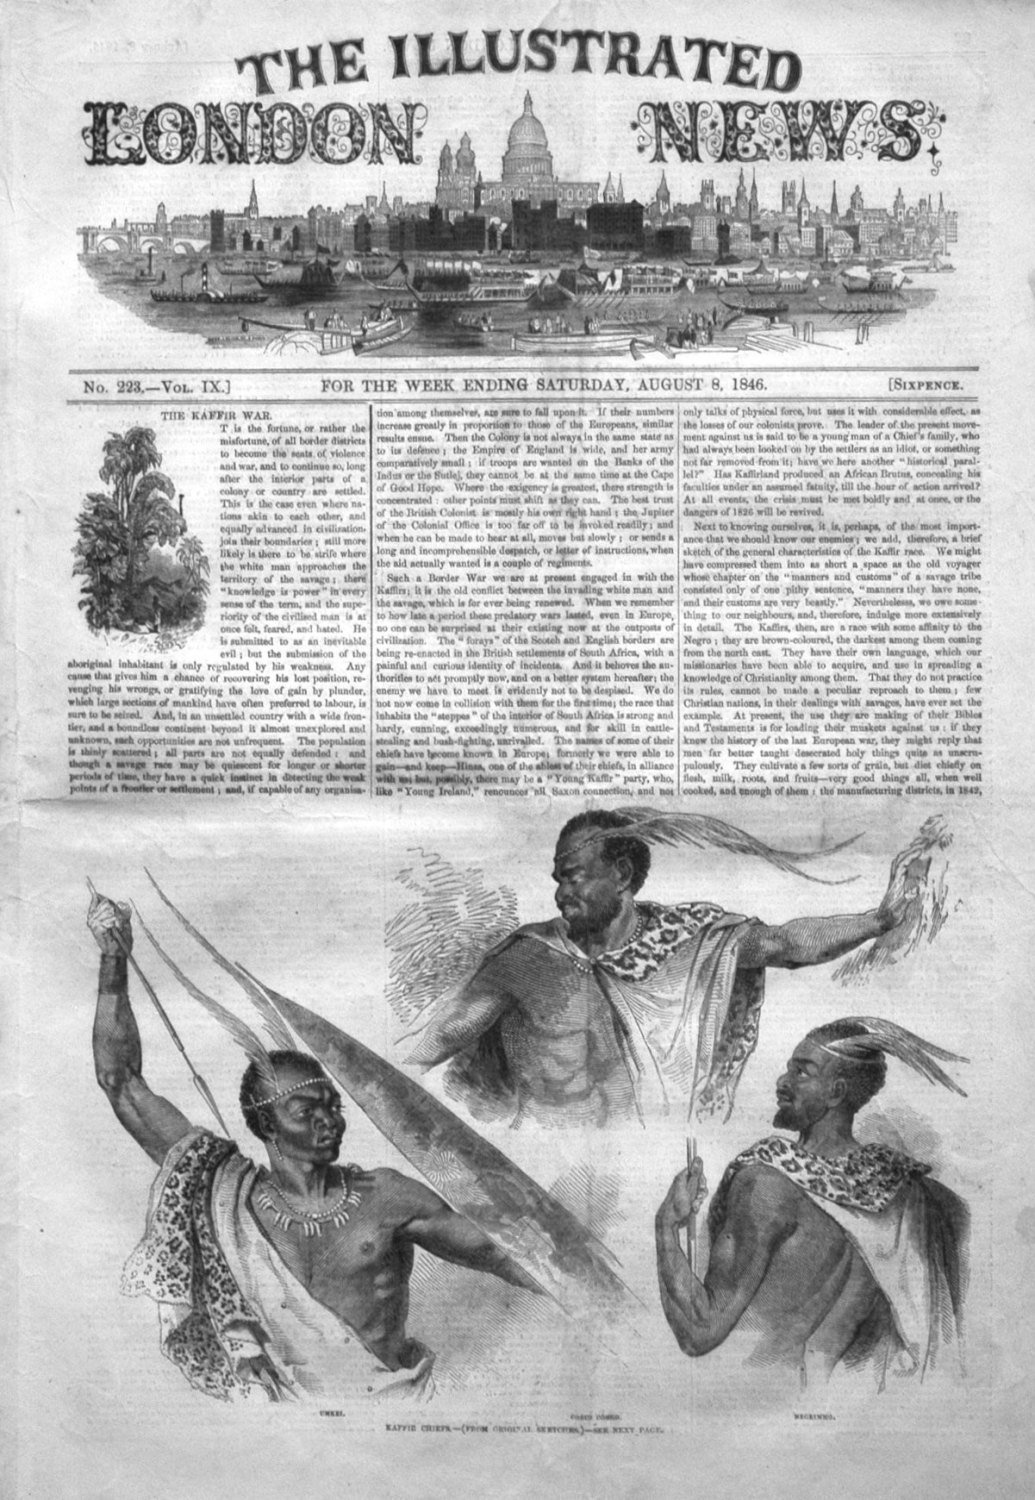 Illustrated London News August 8th 1846.